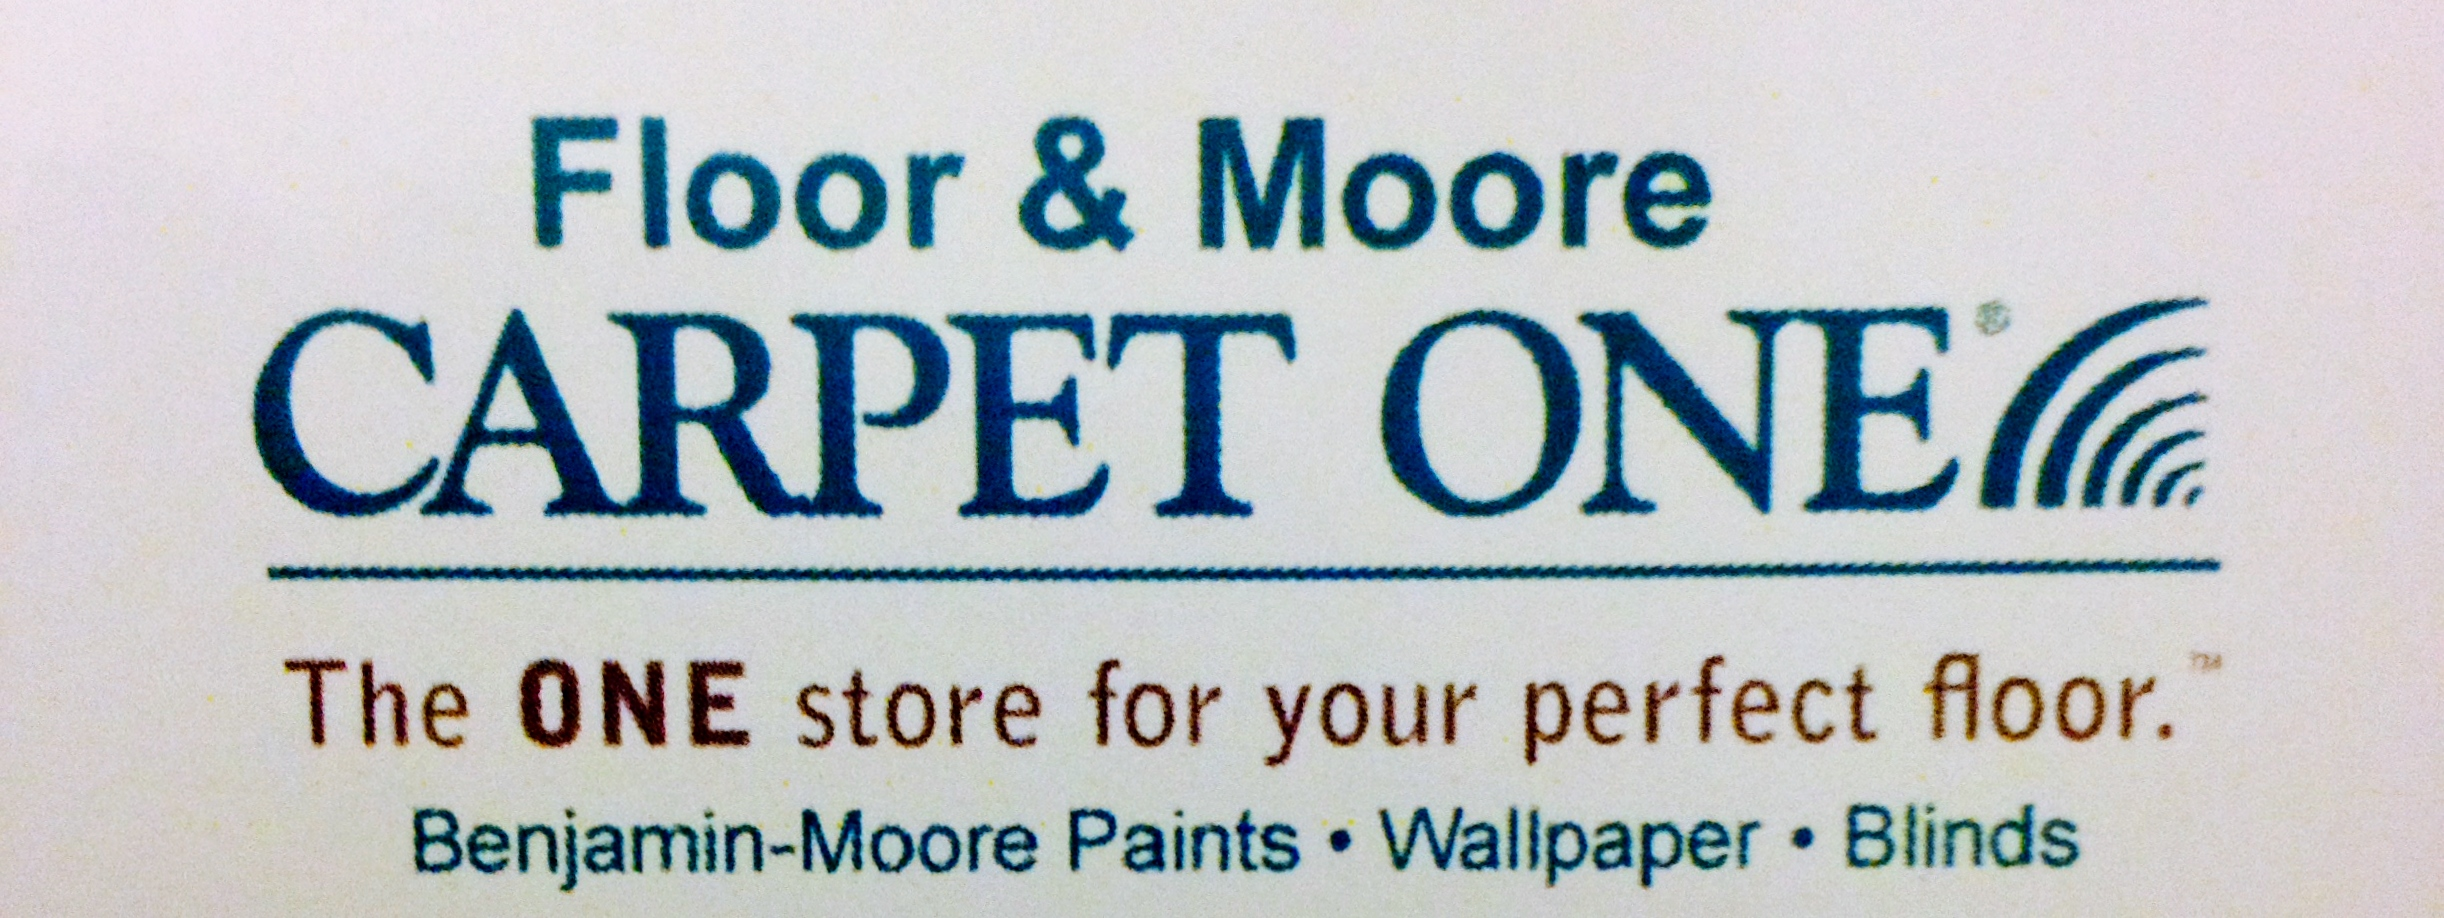 Carpet One Floor and Moore Inc.